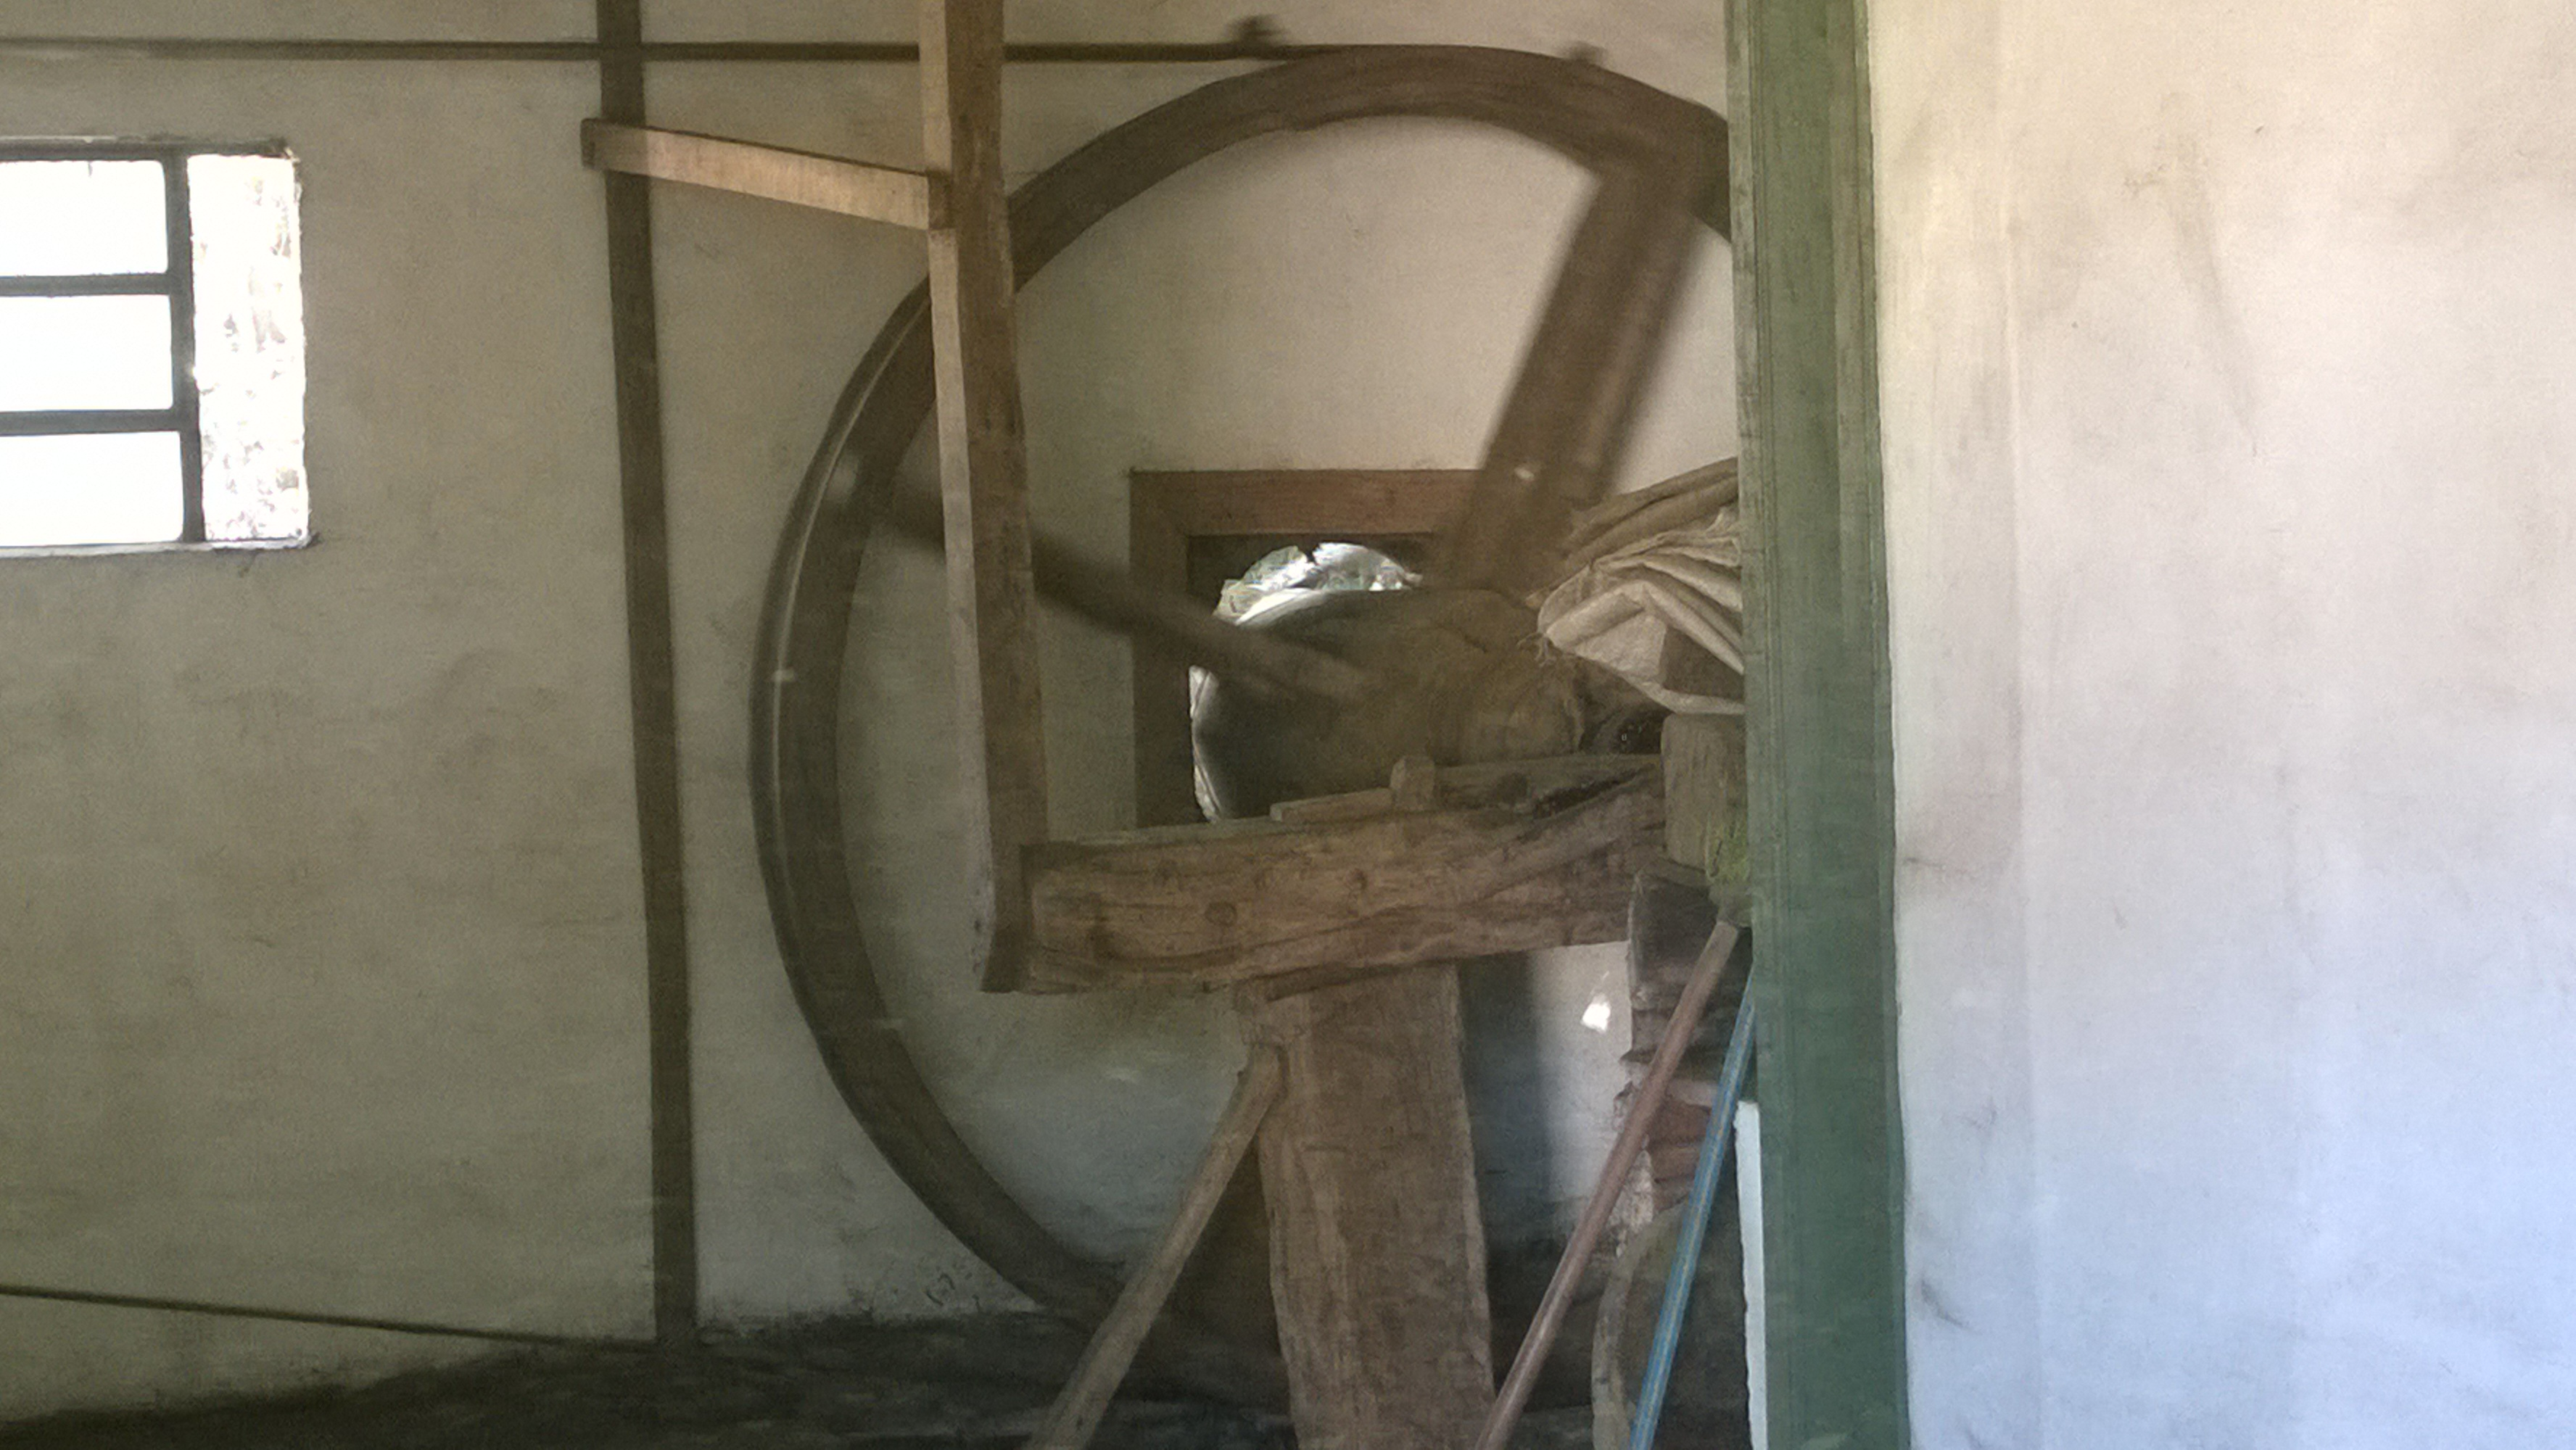 yerba mate - water powered mill from the inside